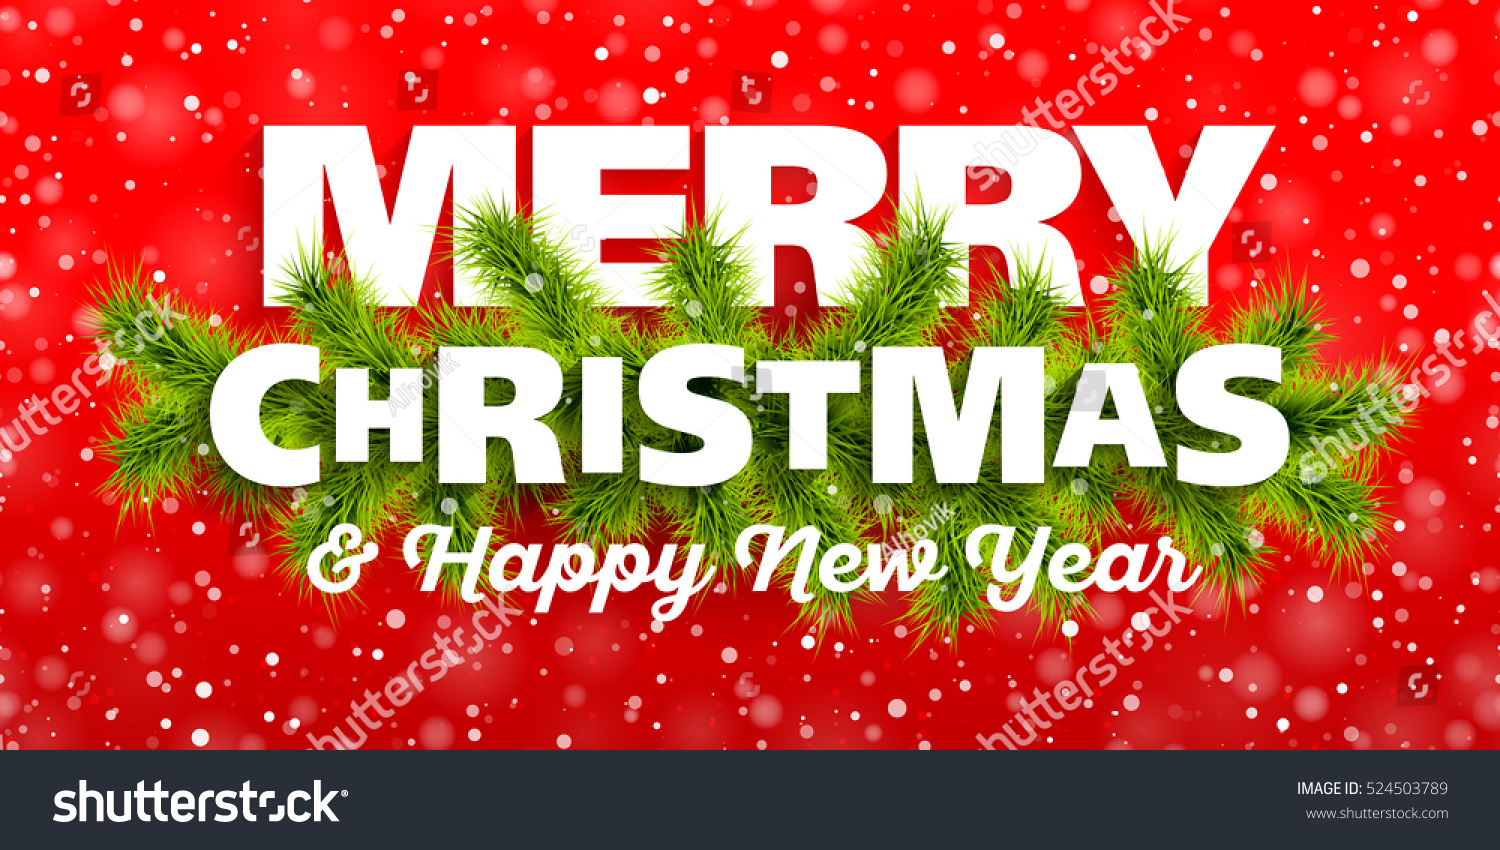 Merry Christmas Happy New Year Greeting Stock-Vektorgrafik ...